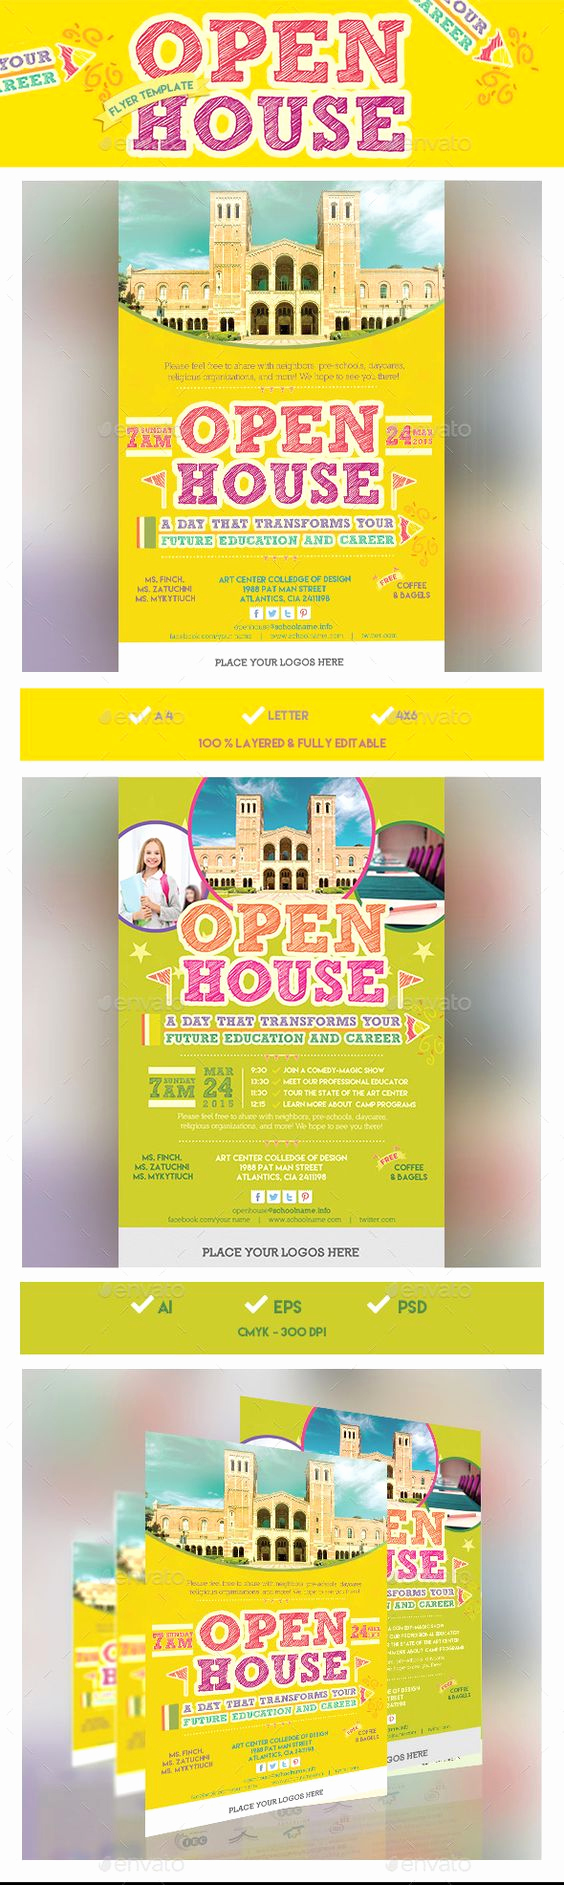 School Open House Invitation Template Awesome Open House Flyer Template